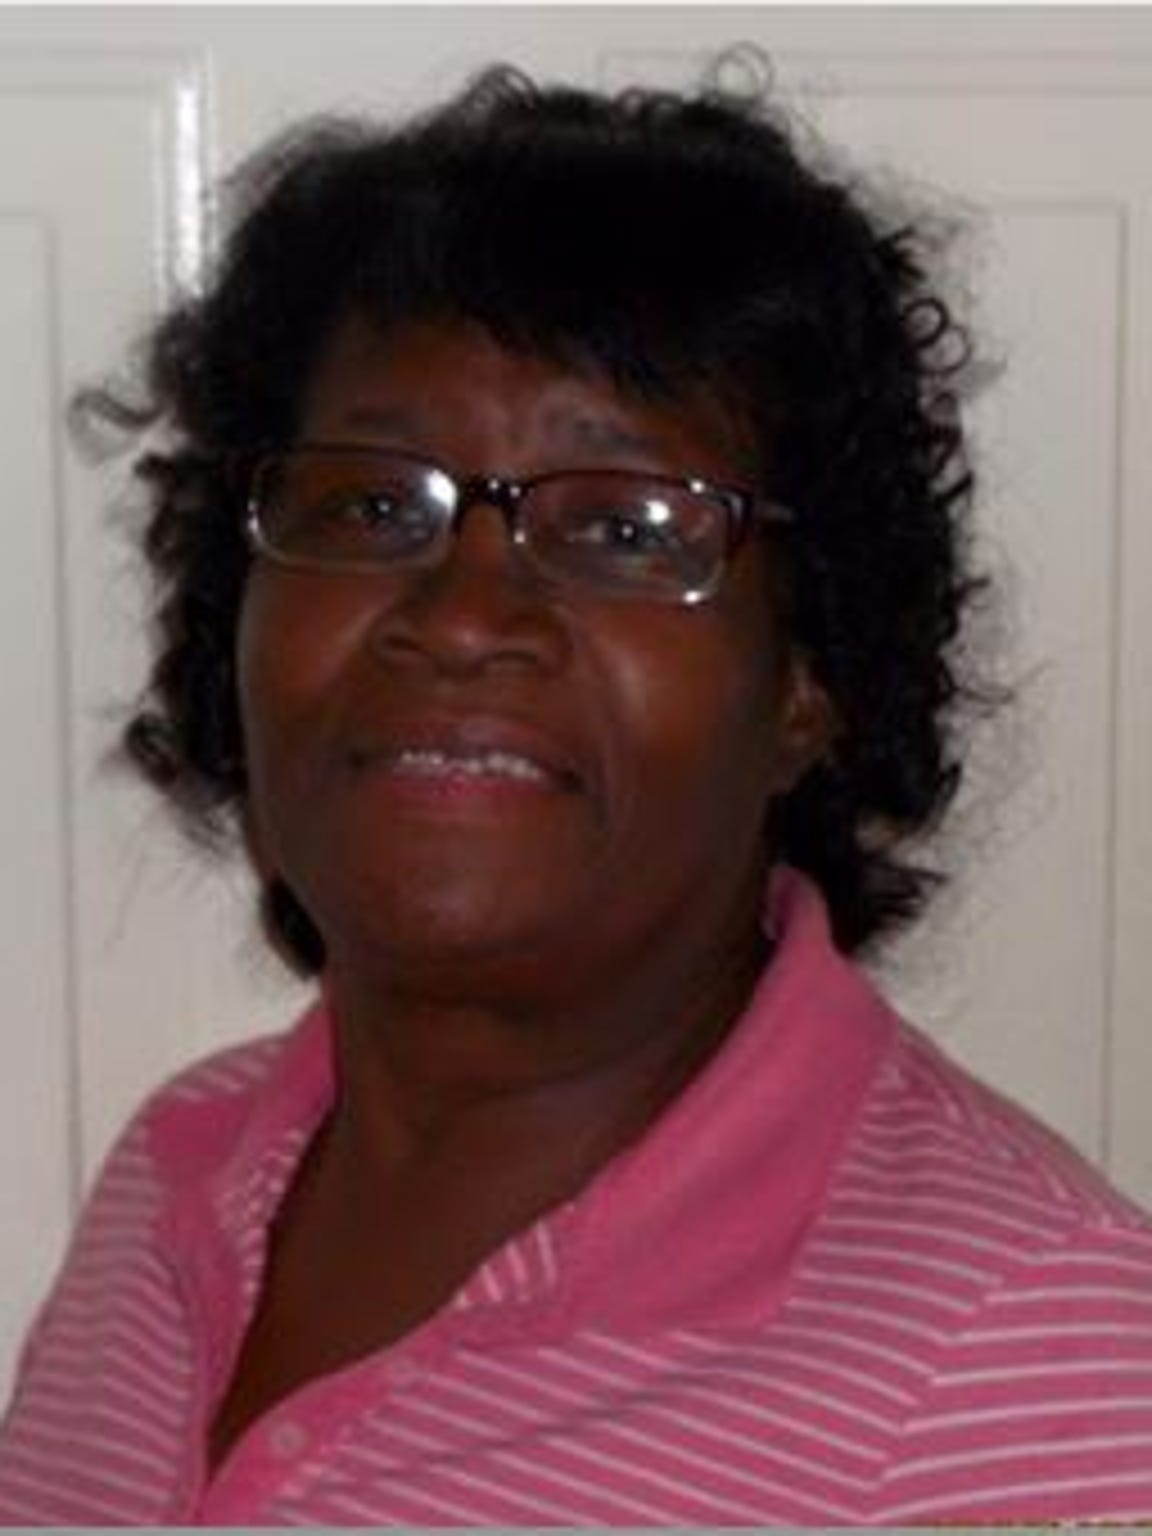 Rosa B. Williams is a Reform Party candidate for lieutenant